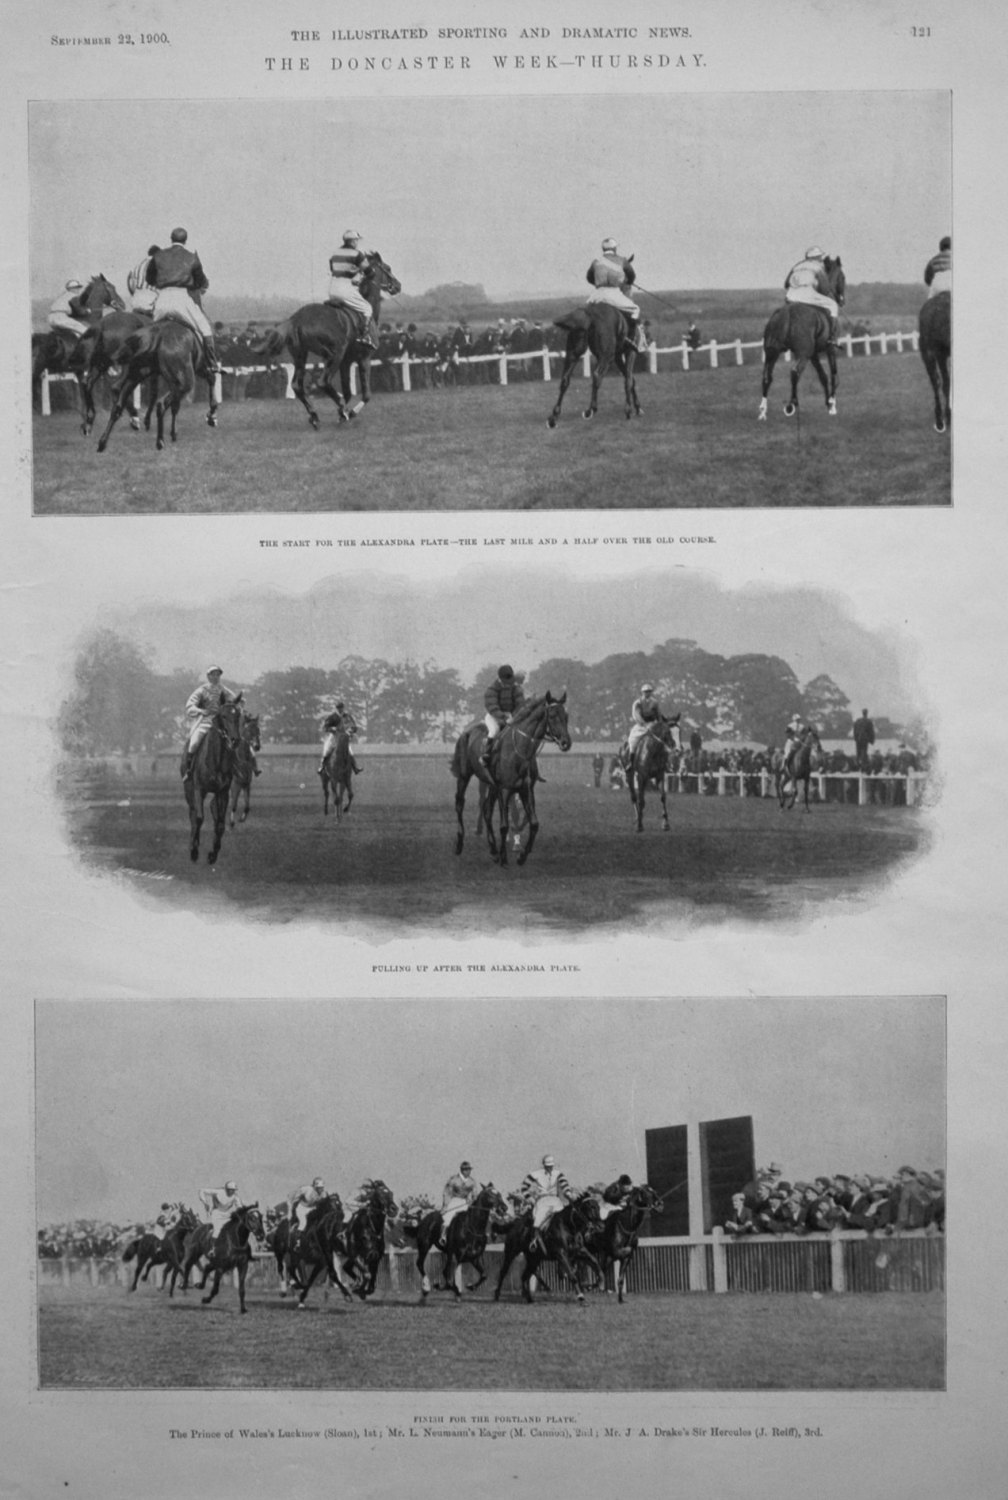 The Doncaster Week - Thursday & Friday 1900.